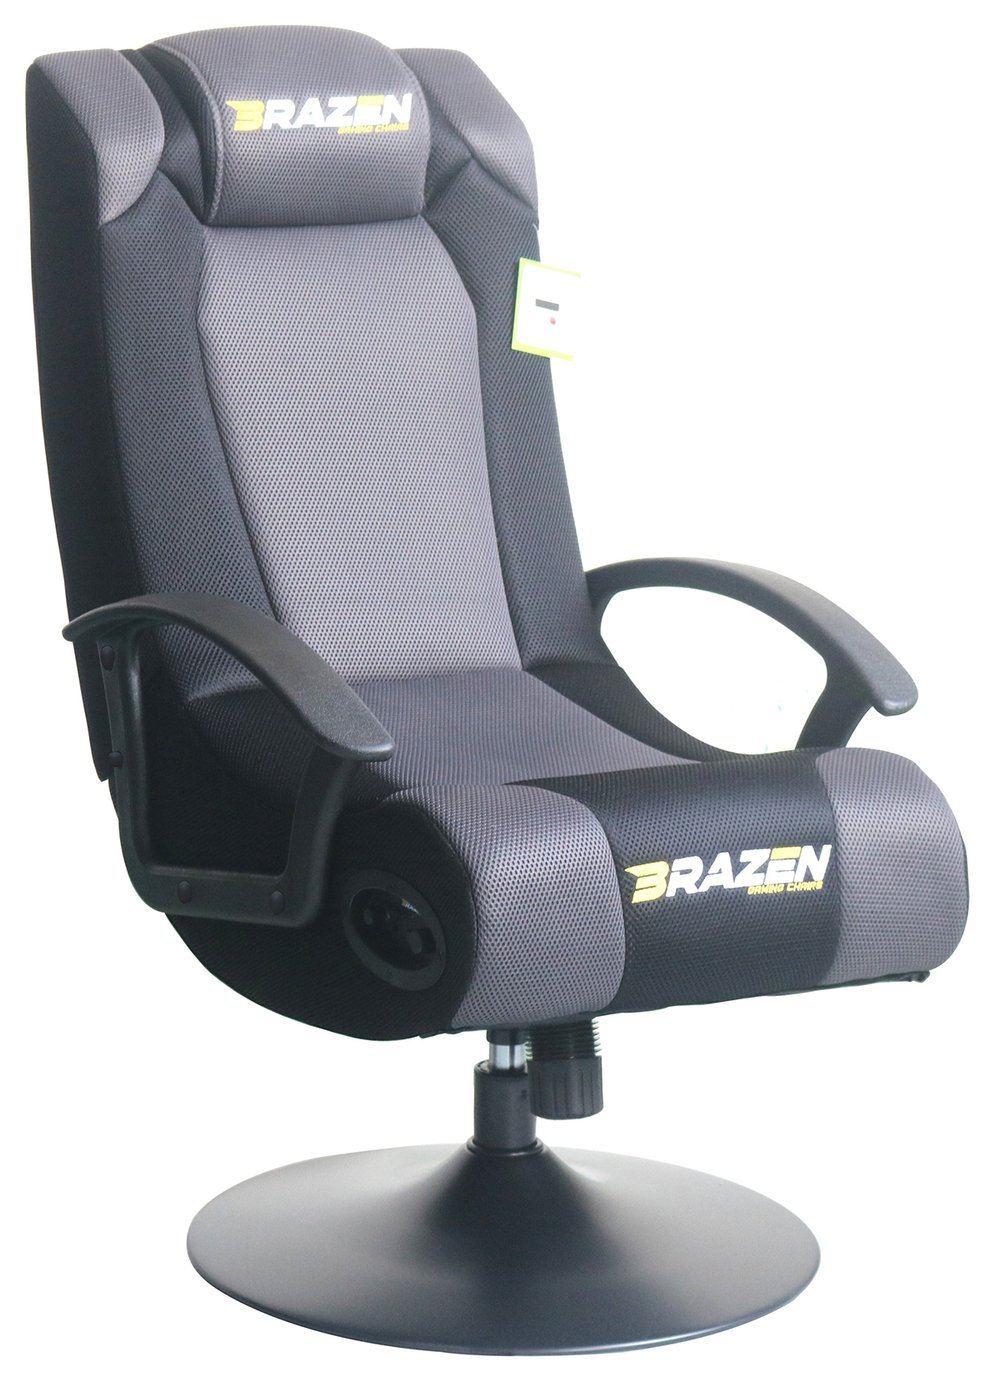 Image of BraZen Stag 2.1 Surround Sound Gaming Chair.